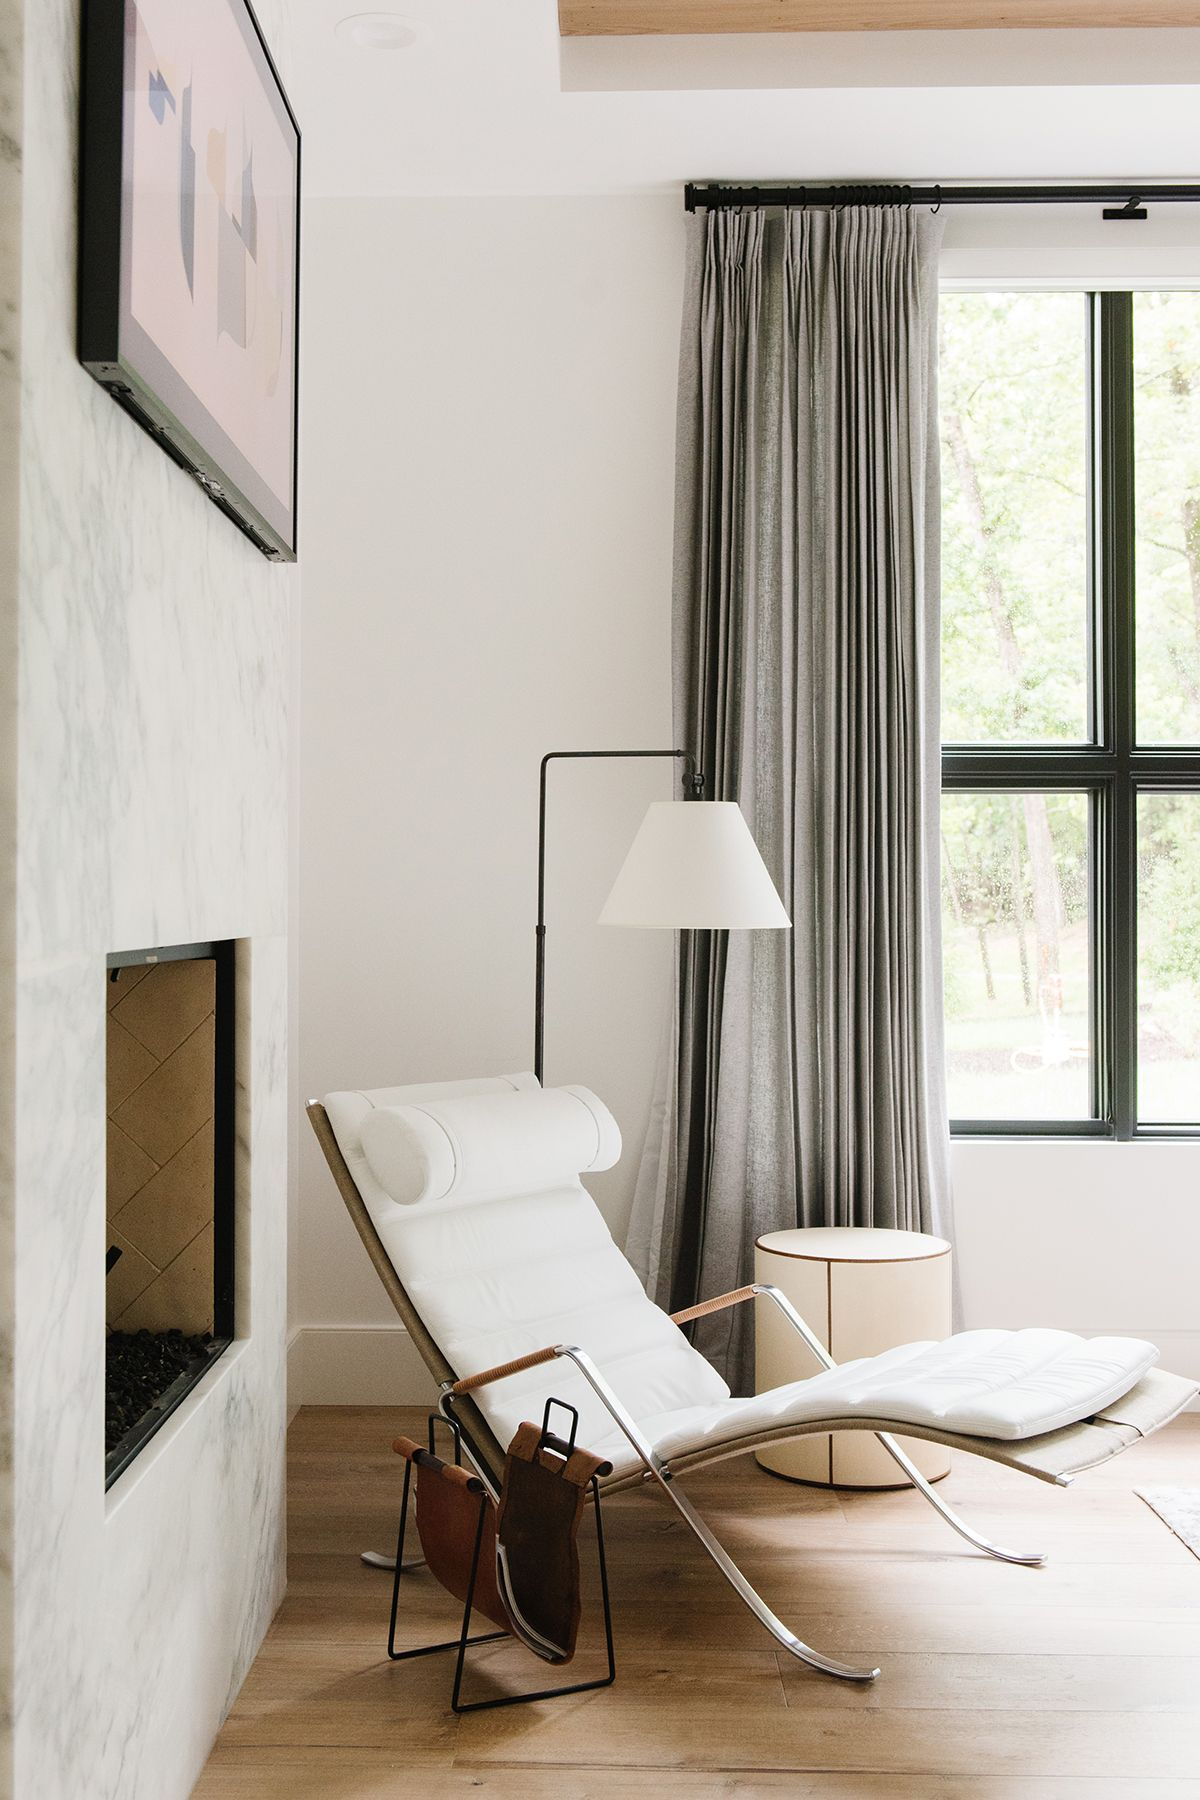 Master Bedroom Lounge Chair Modern Master Bedroom Lounge Chair In Corner With Lamp And